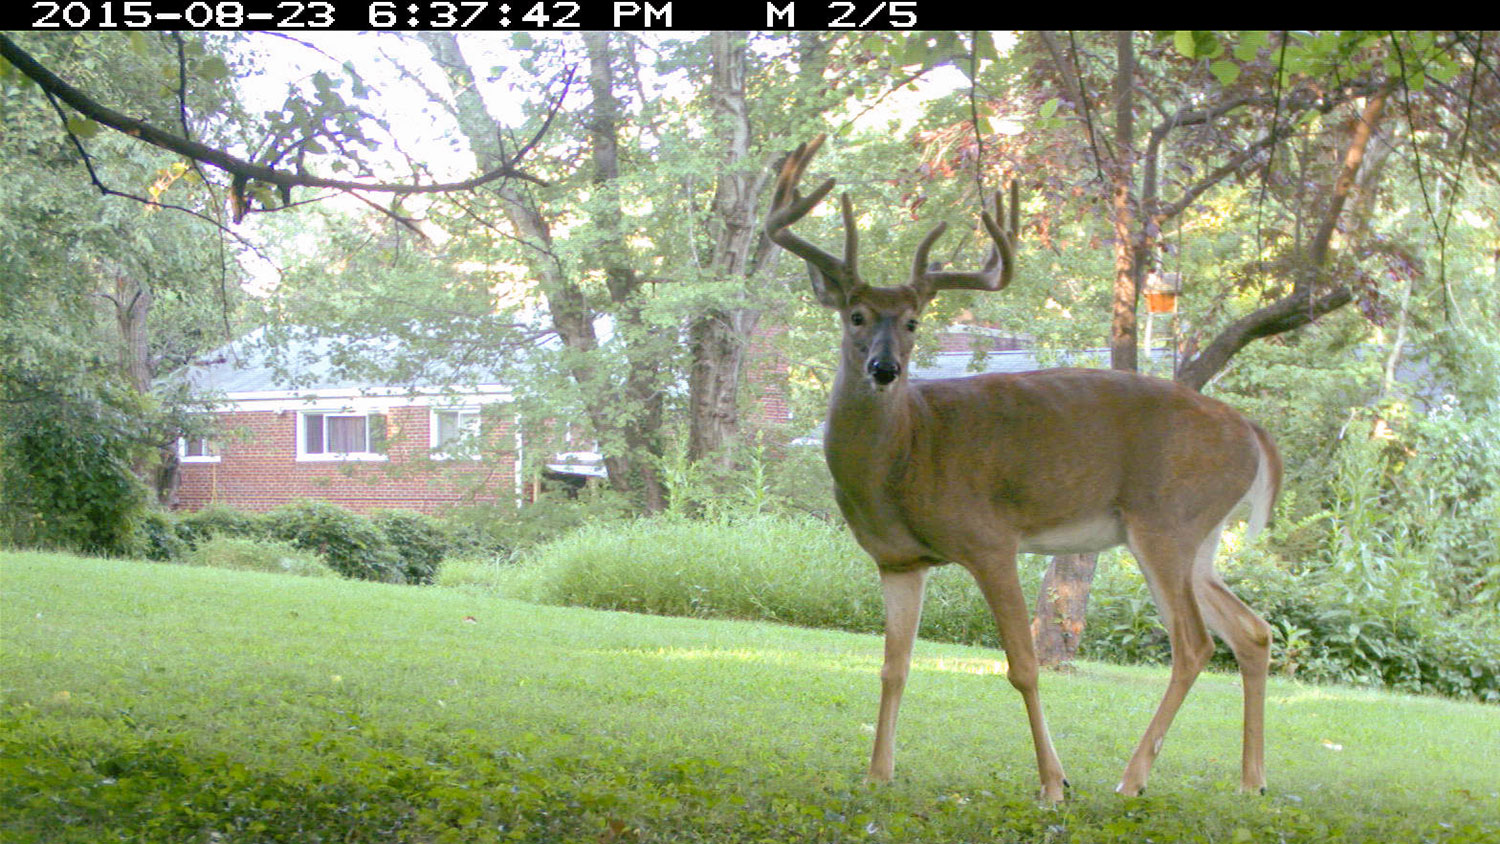 A deer faces the camera, a home can be seen in the background.